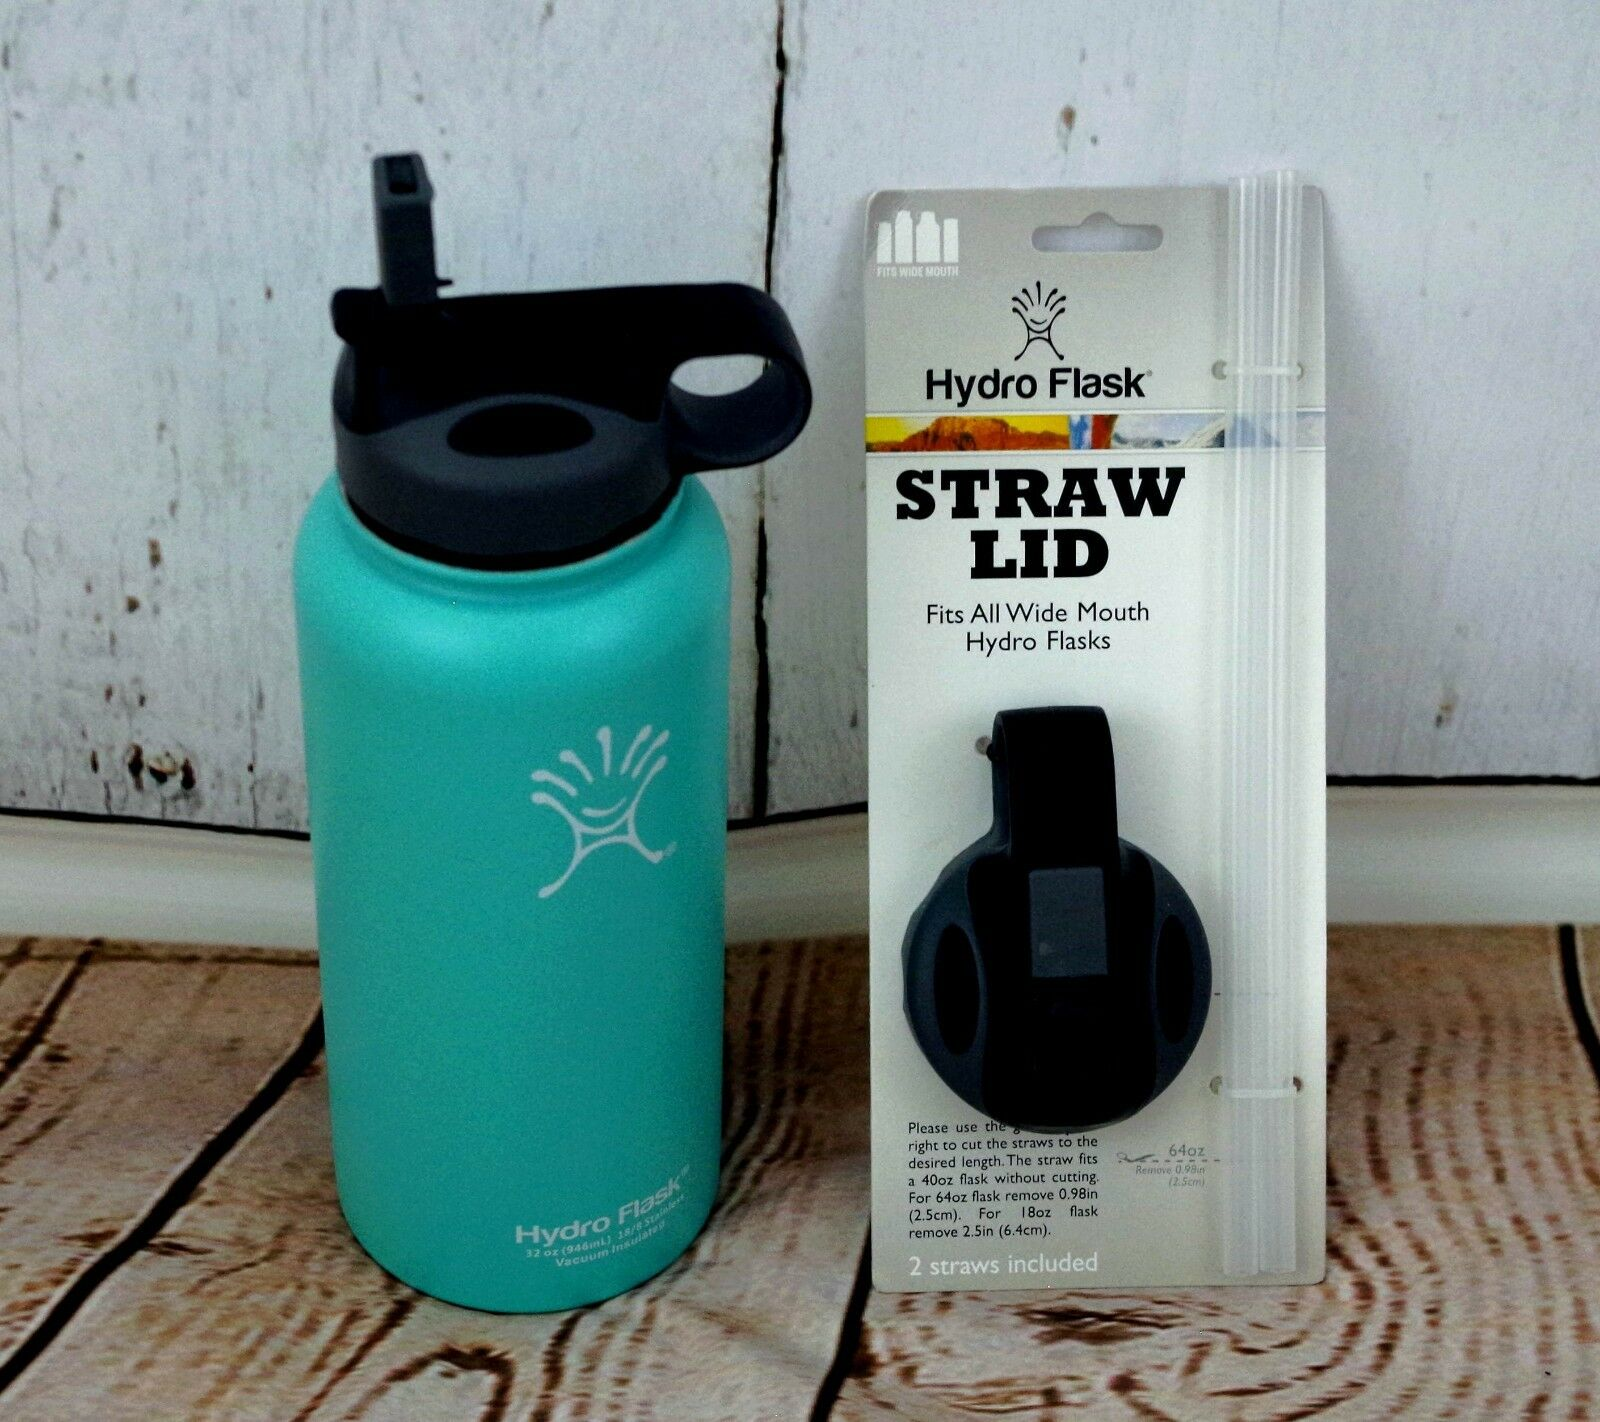 Water Bottle Straw Lid - Fits all Wide-Mouth Hydro Flasks Grey/Black